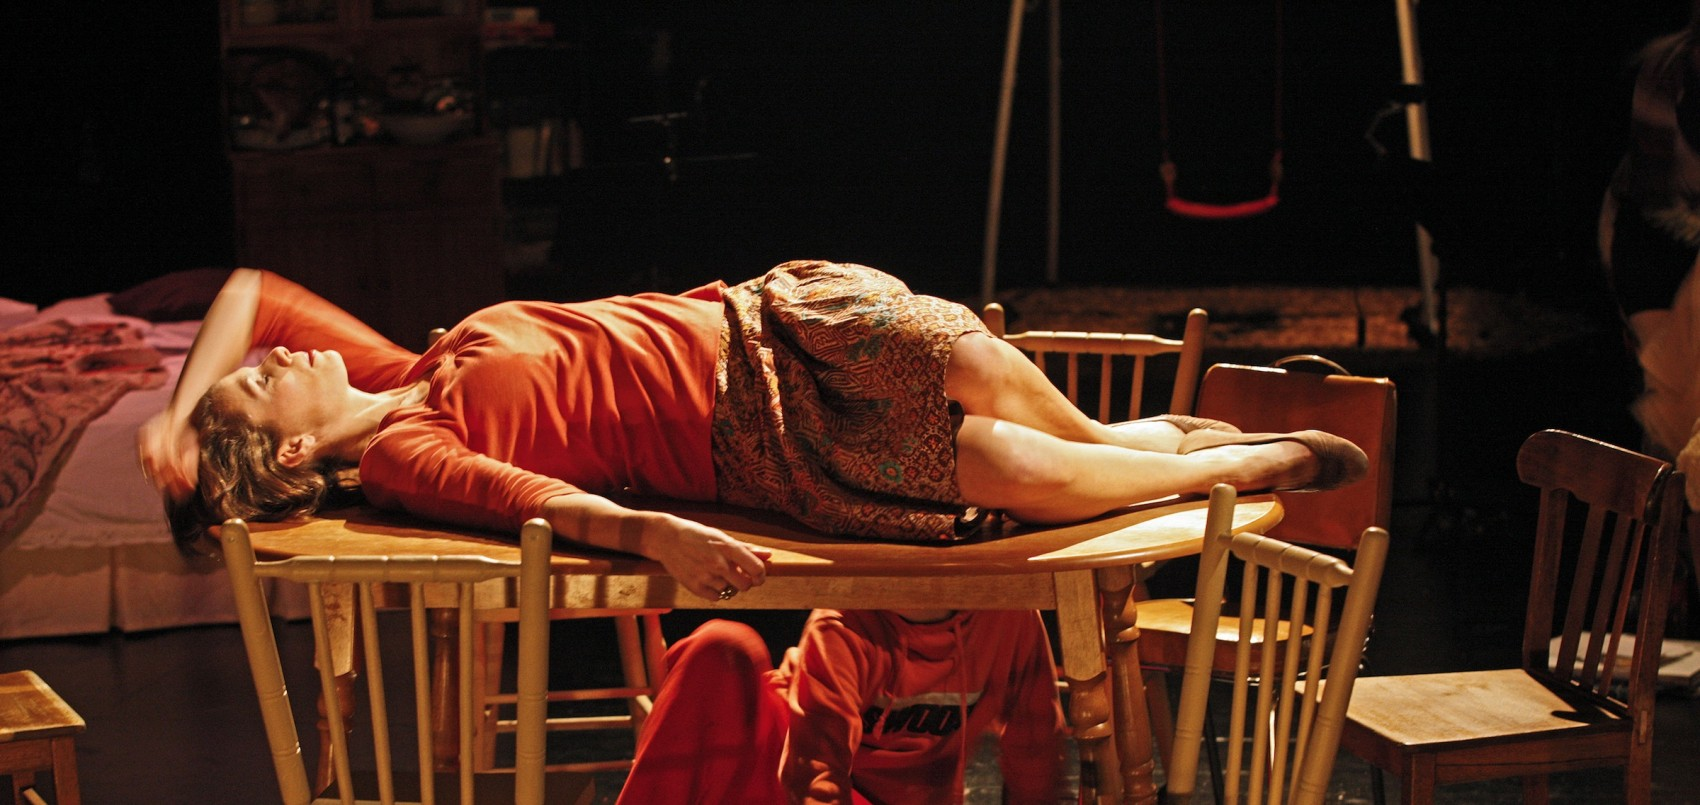 Stage image of a woman lying on top of a wooden table, chairs around